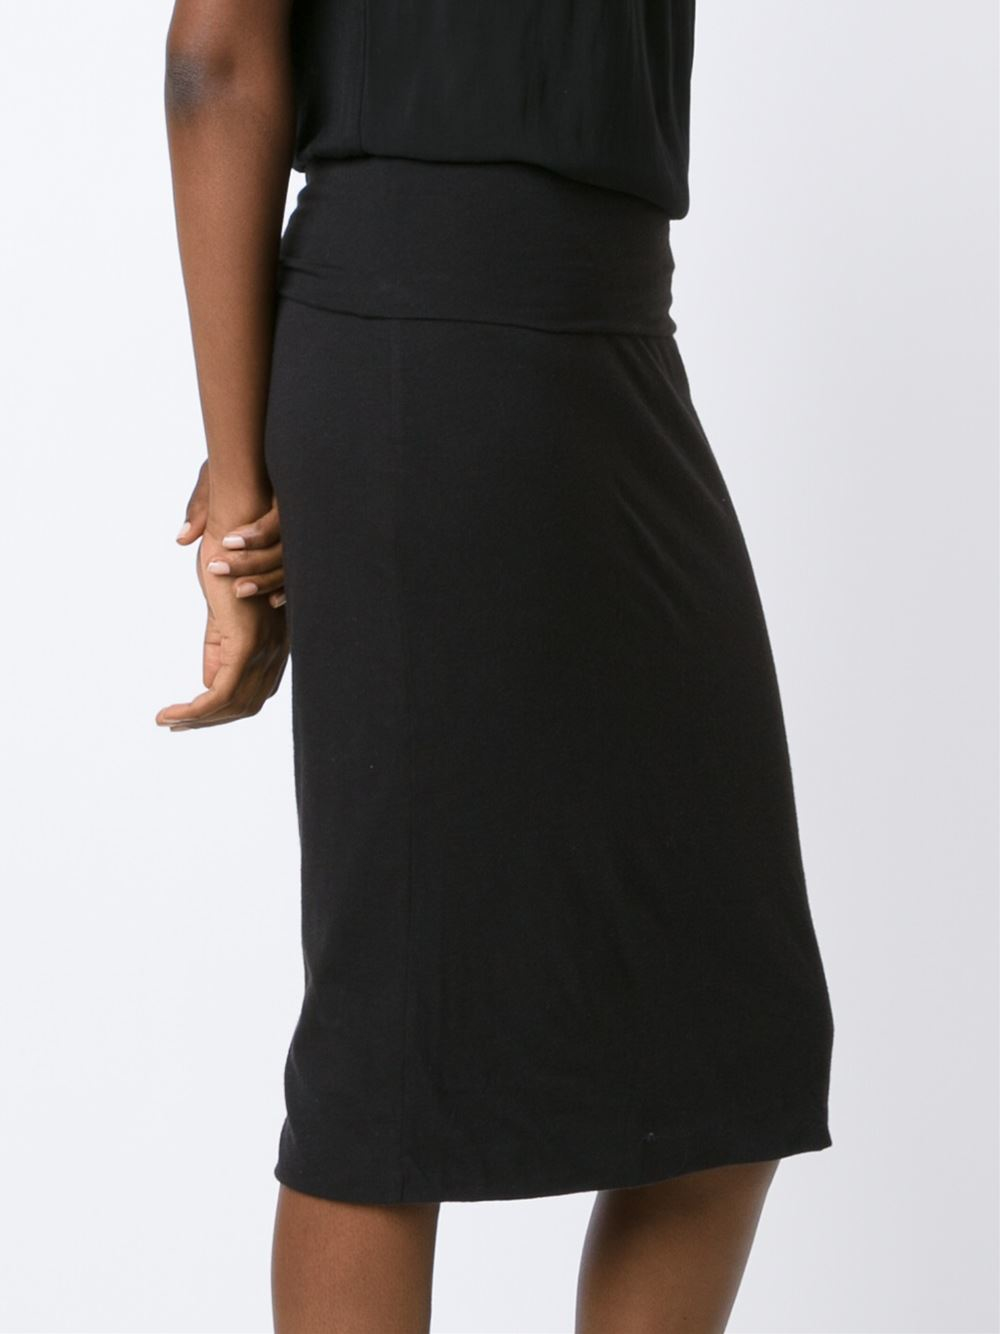 raquel allegra jersey pencil skirt in black lyst